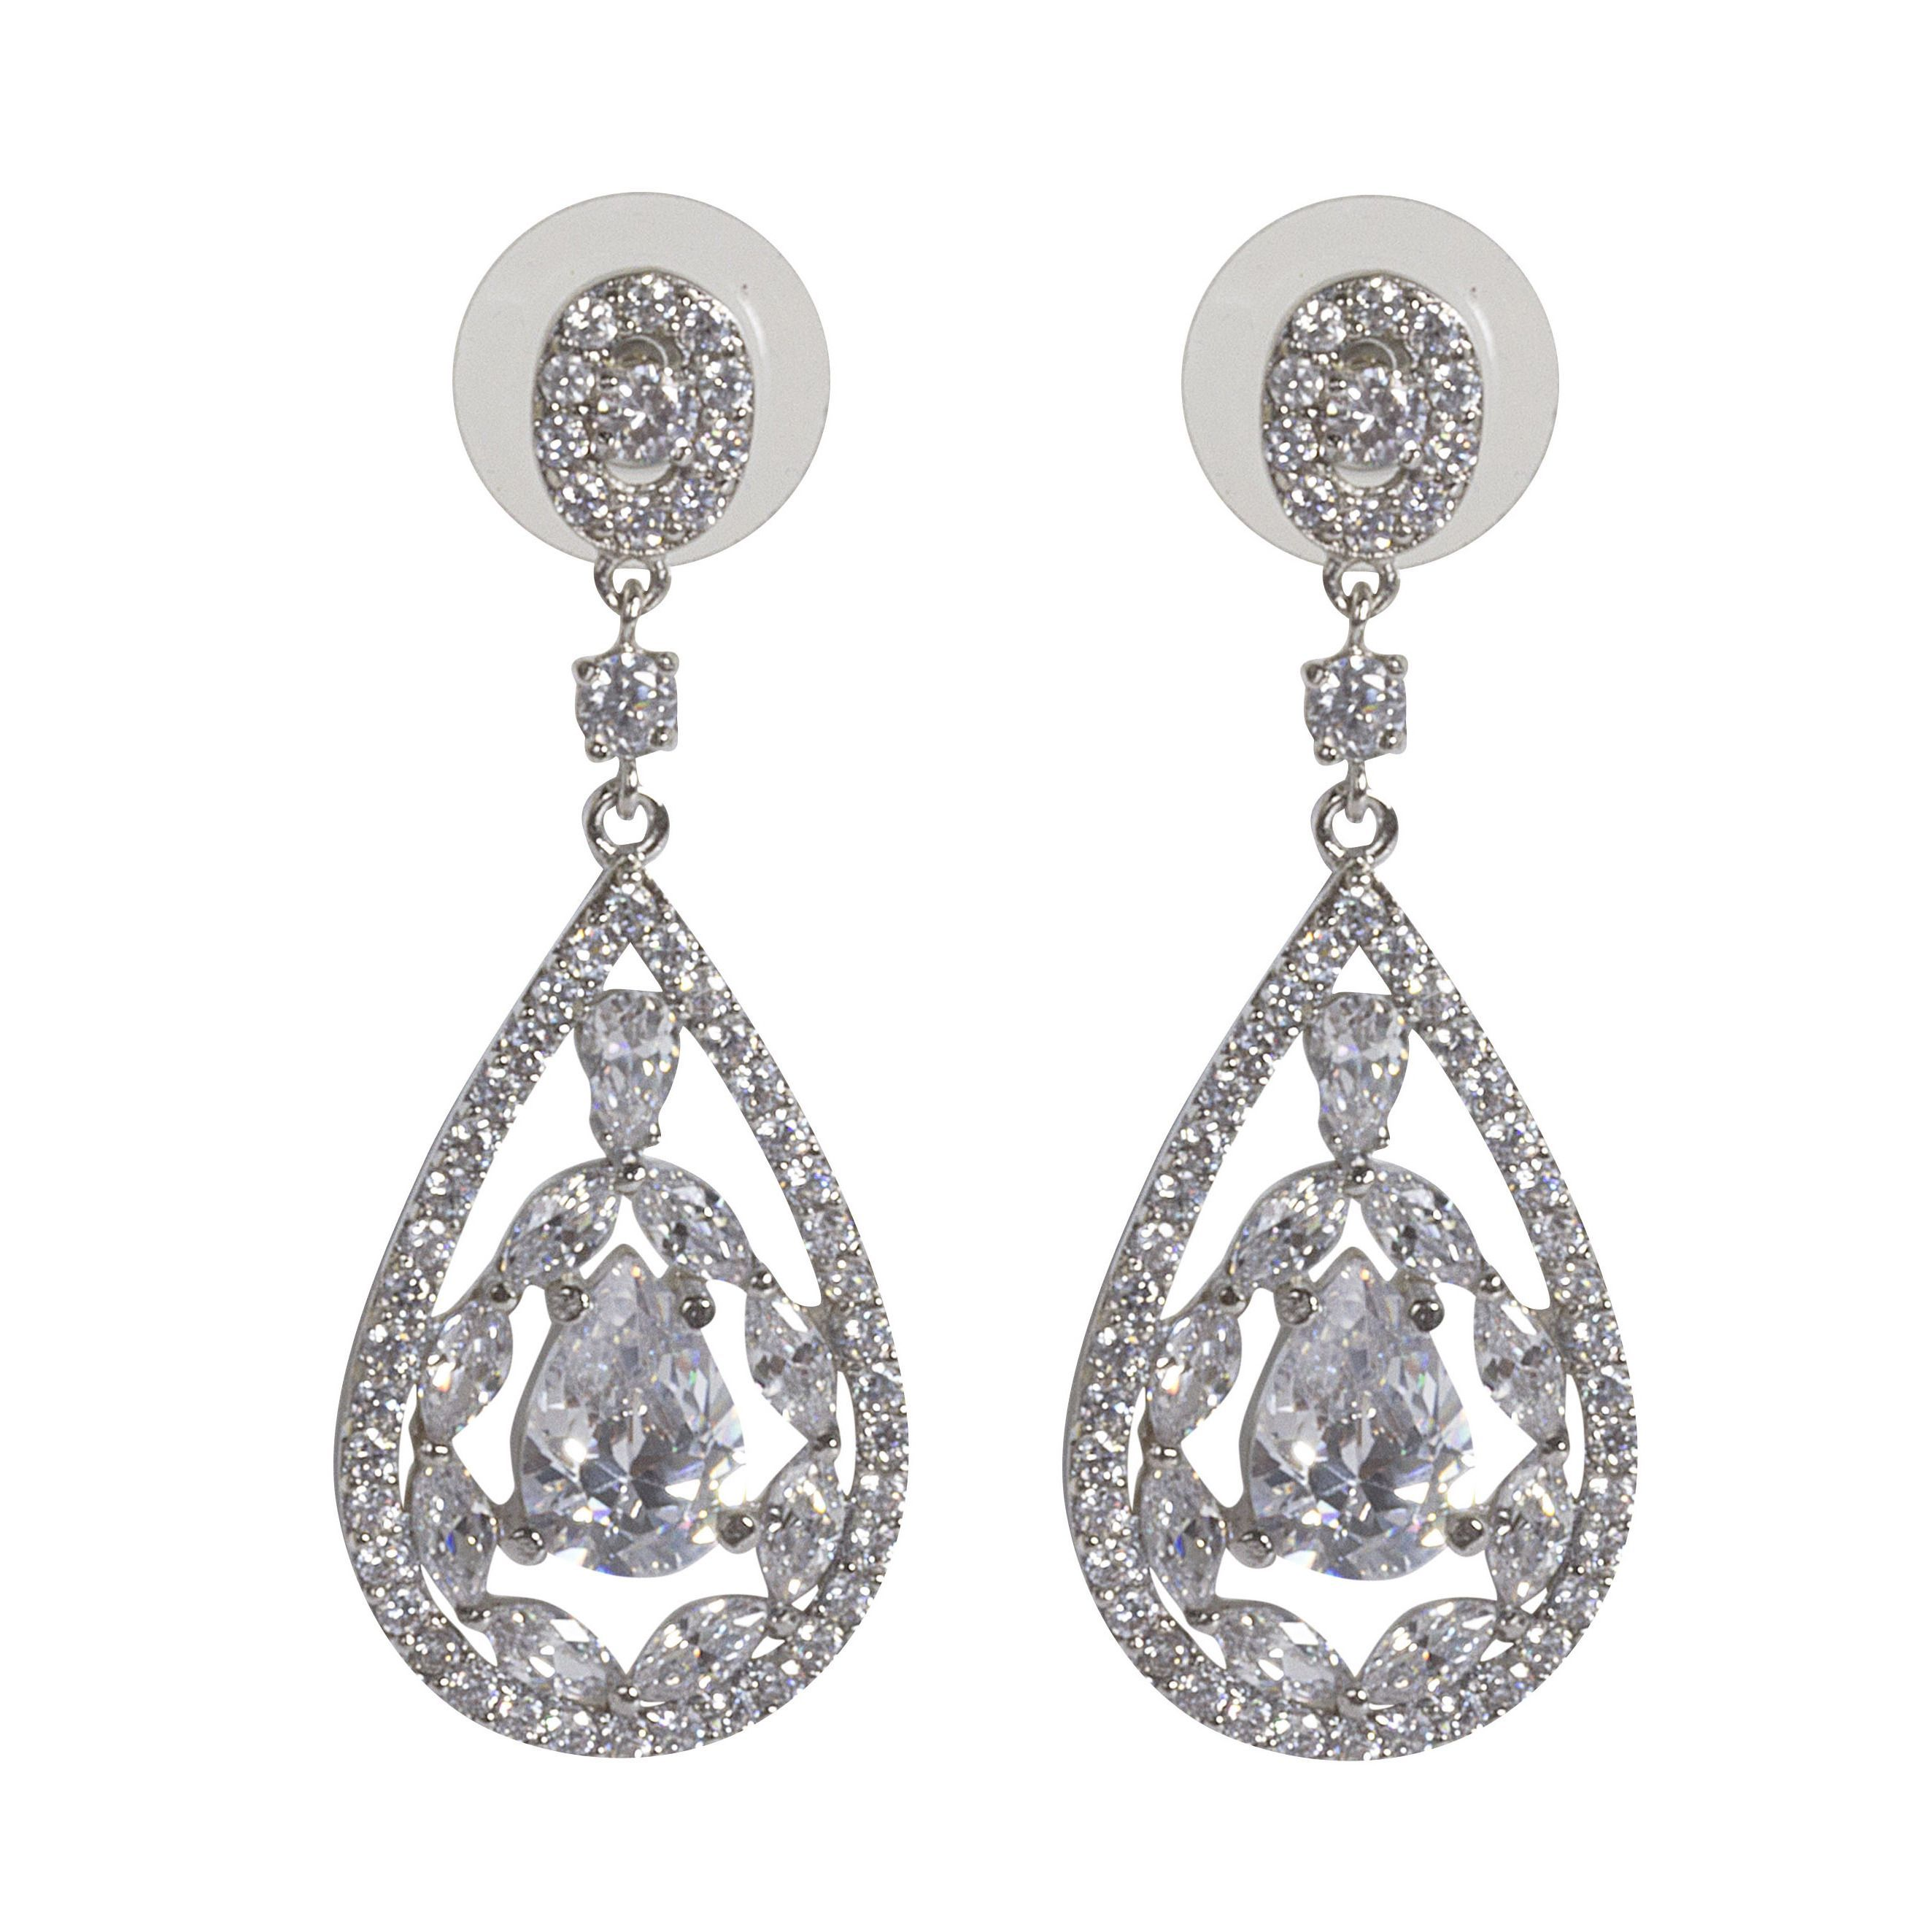 Nexte Jewelry Rhodium plated Cubic Zirconia Trifecta Dangle Earrings